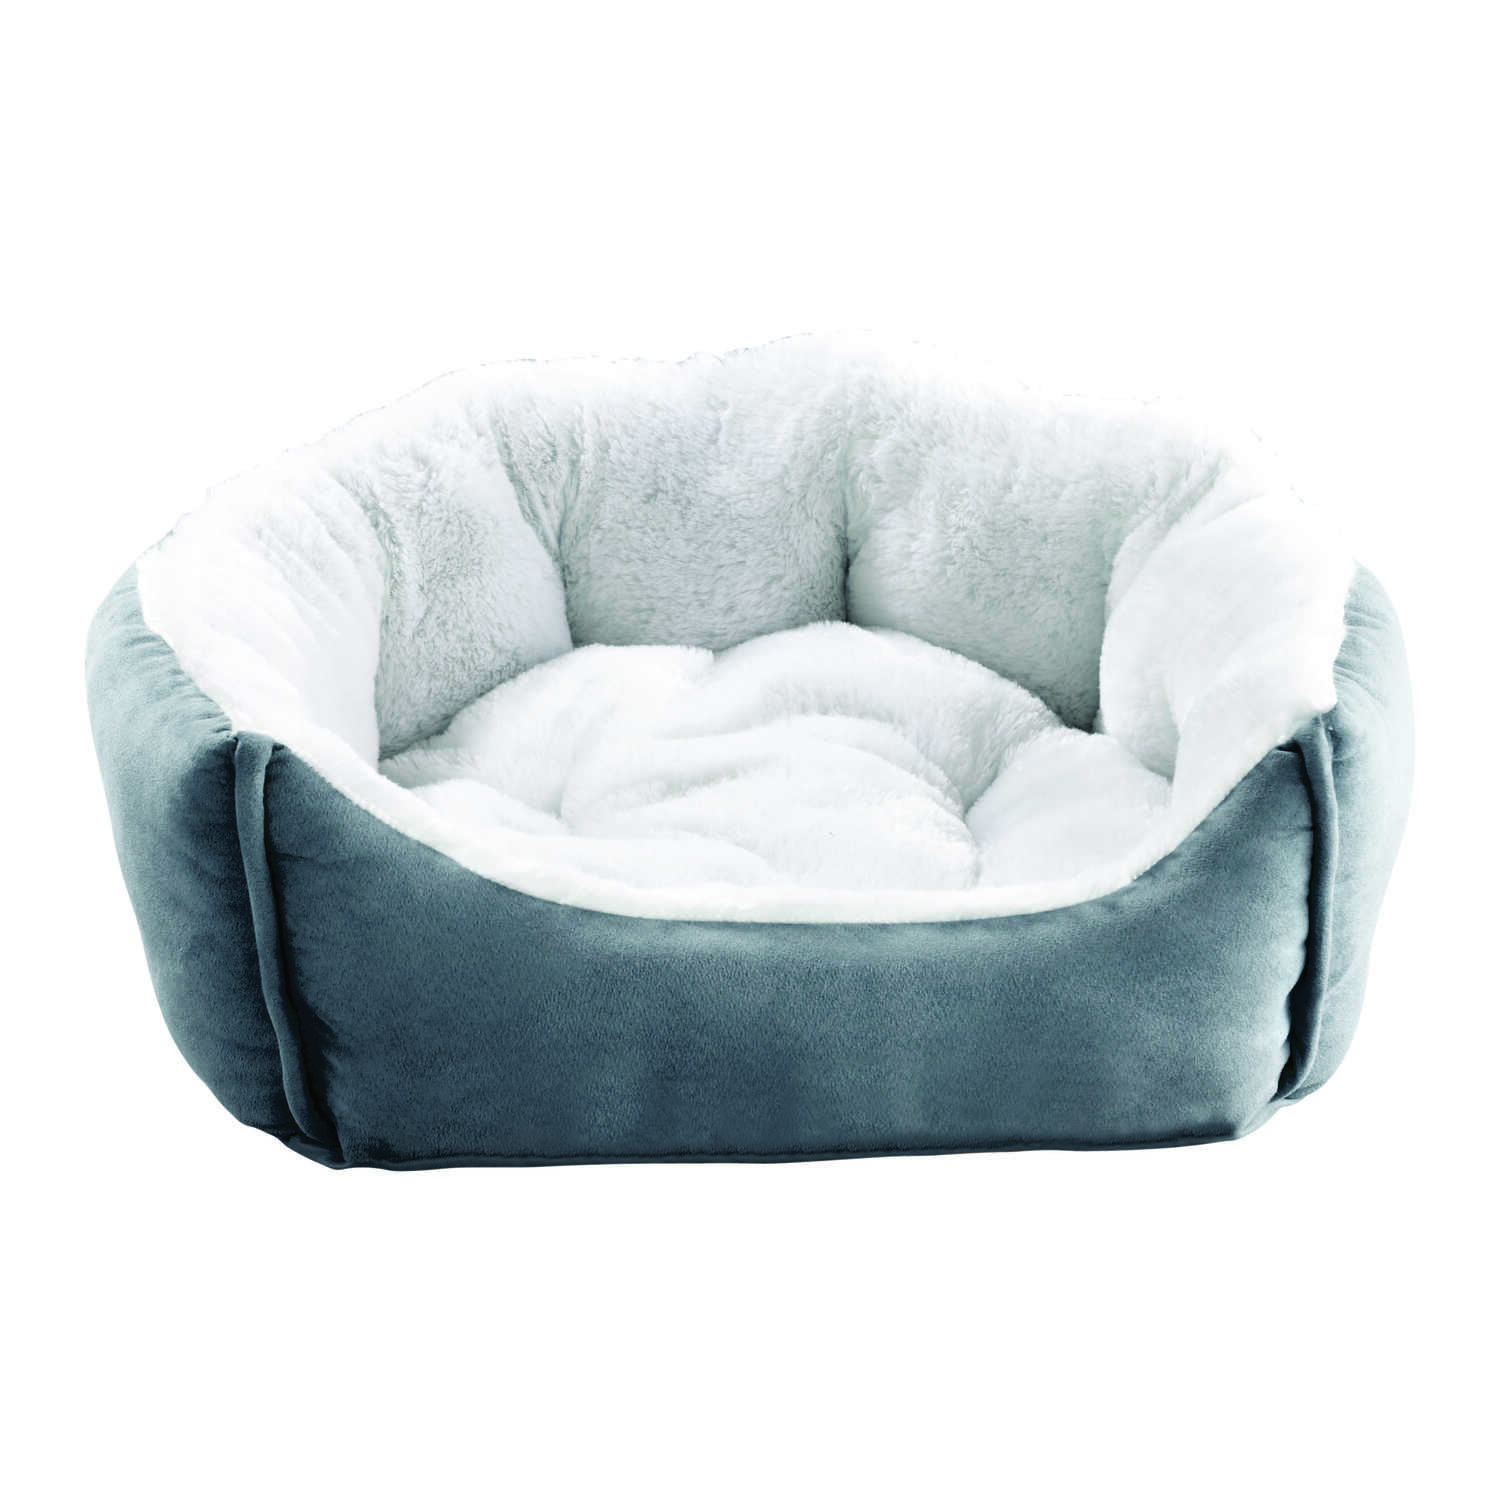 Animal Planet  Assorted  24 in. W x 21 in. L x 8 in. H Pet Bed  Oval  Micro Suede